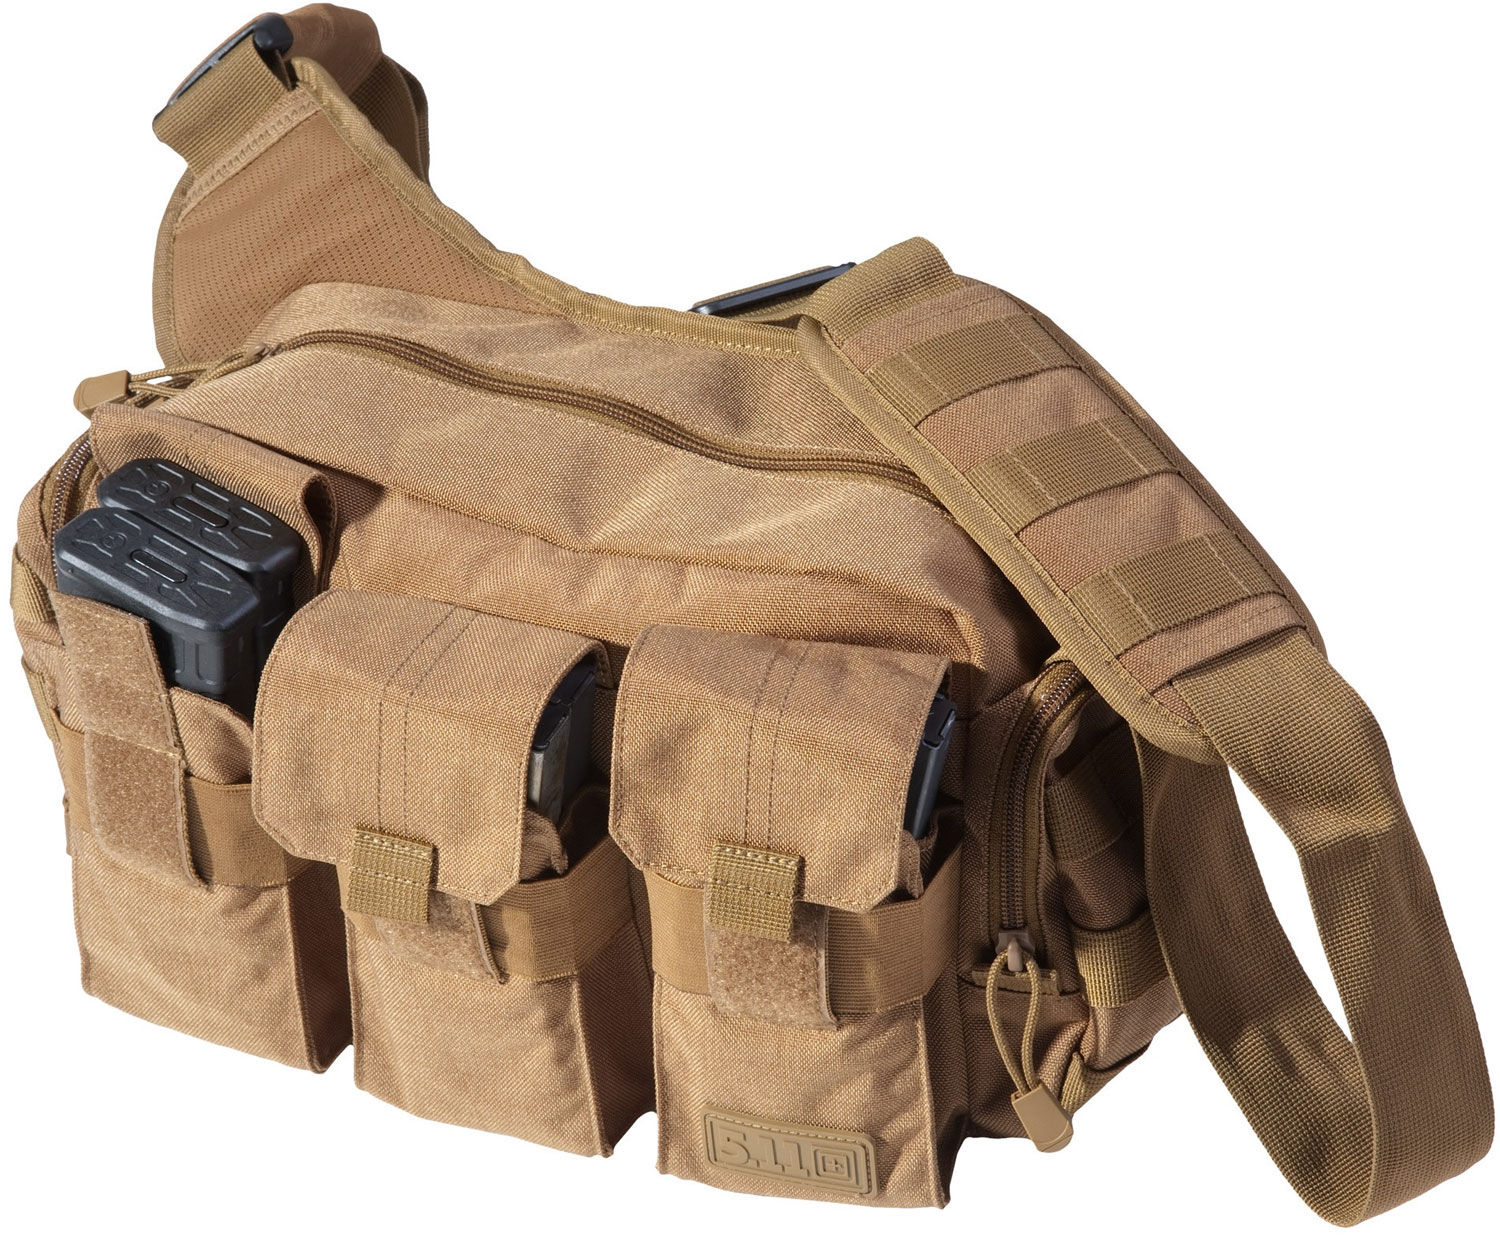 5.11 Tactical Bail Out Bag, Flat Dark Earth (56026-131)